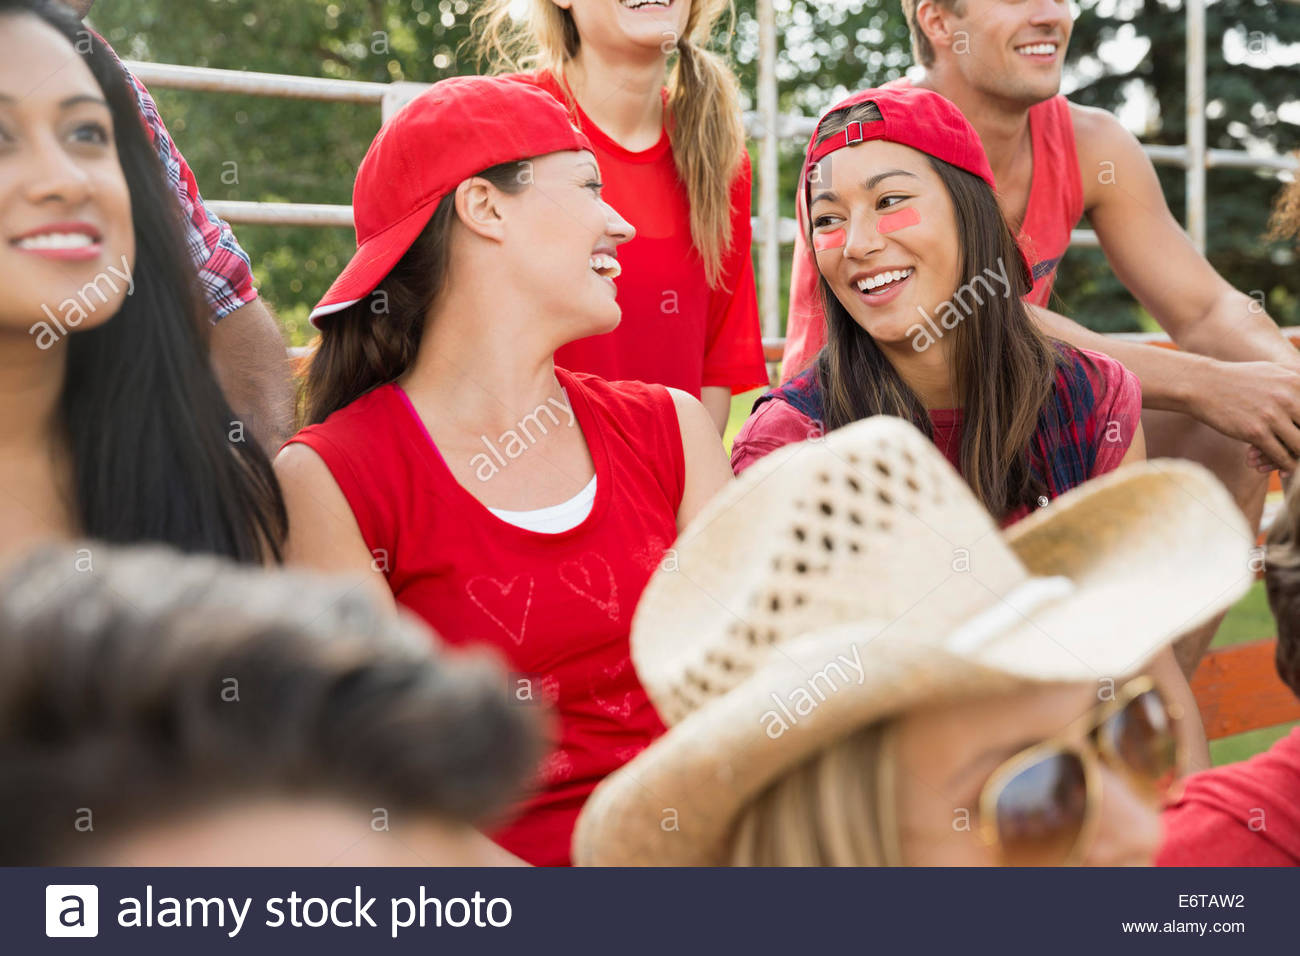 Women talking at sporting event - Stock Image